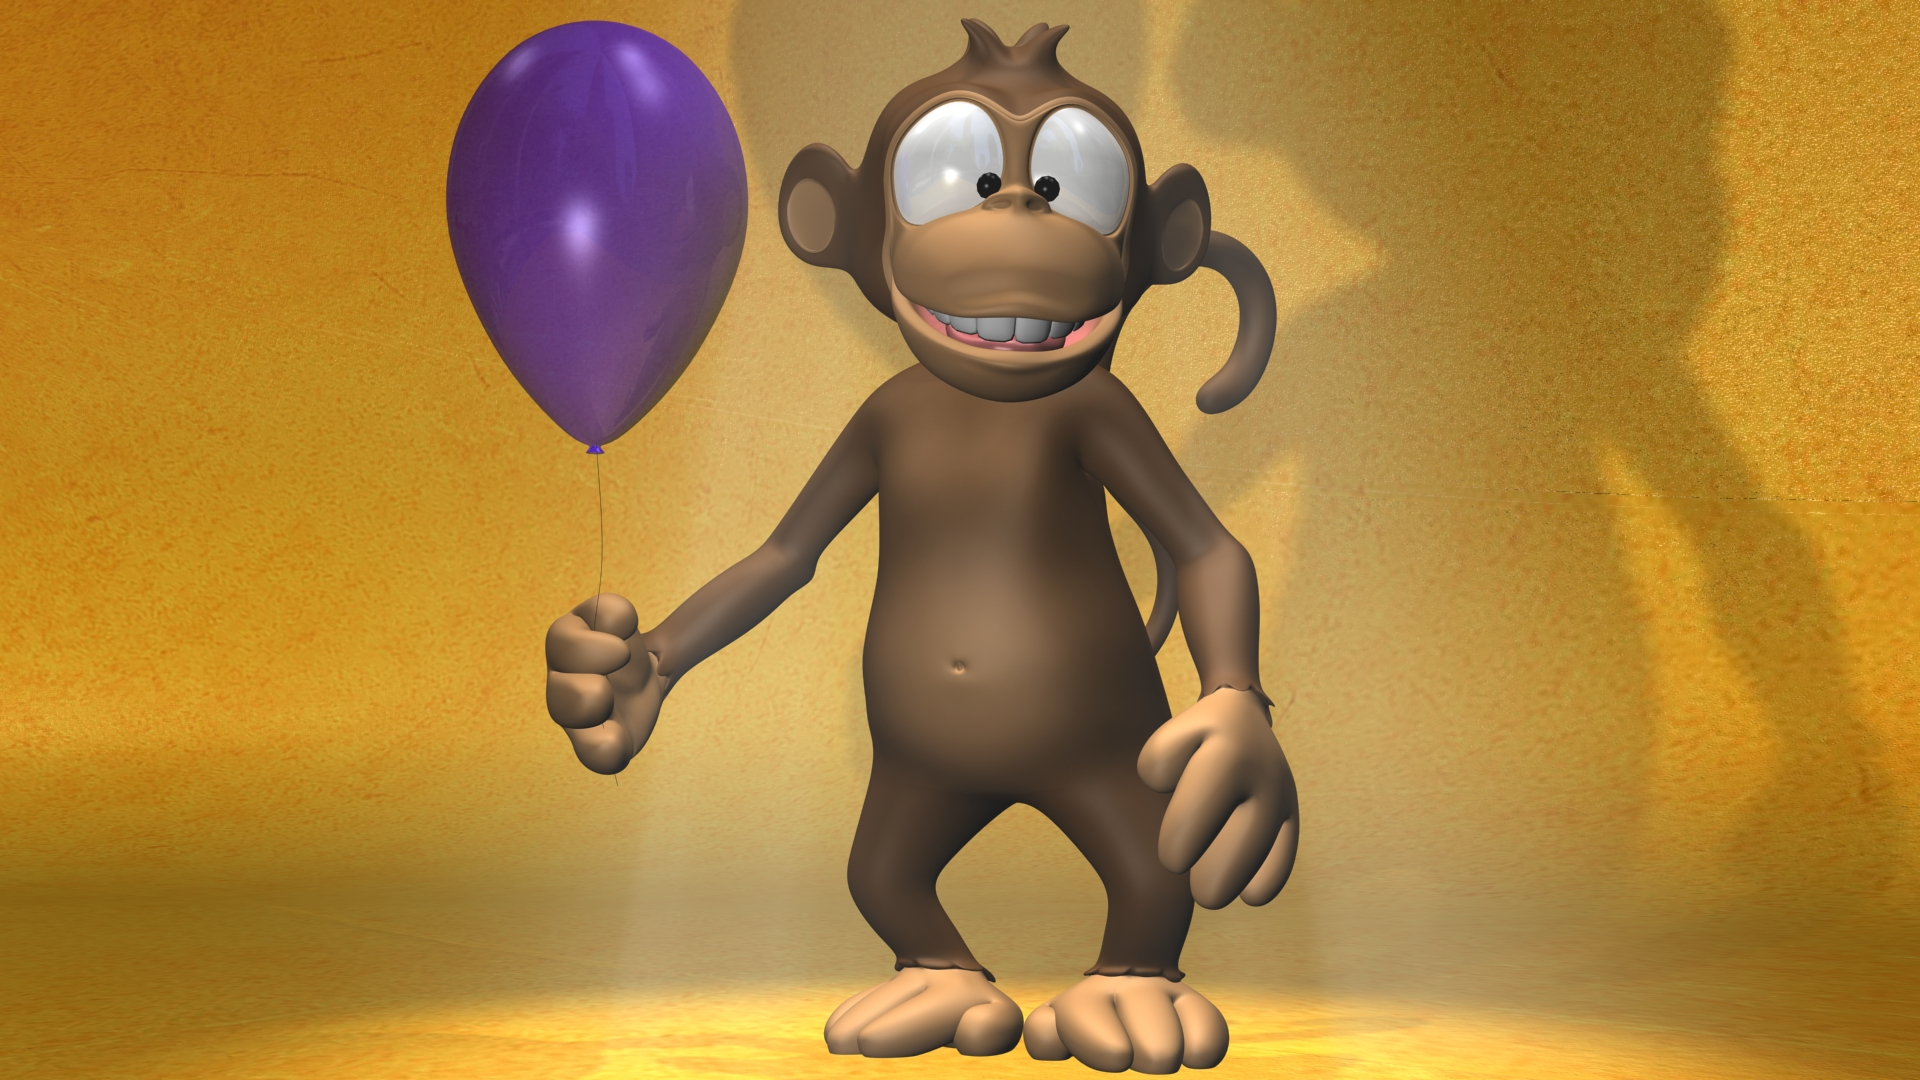 Cartoon Monkey 3D Full HD Wallpaper And Background Image